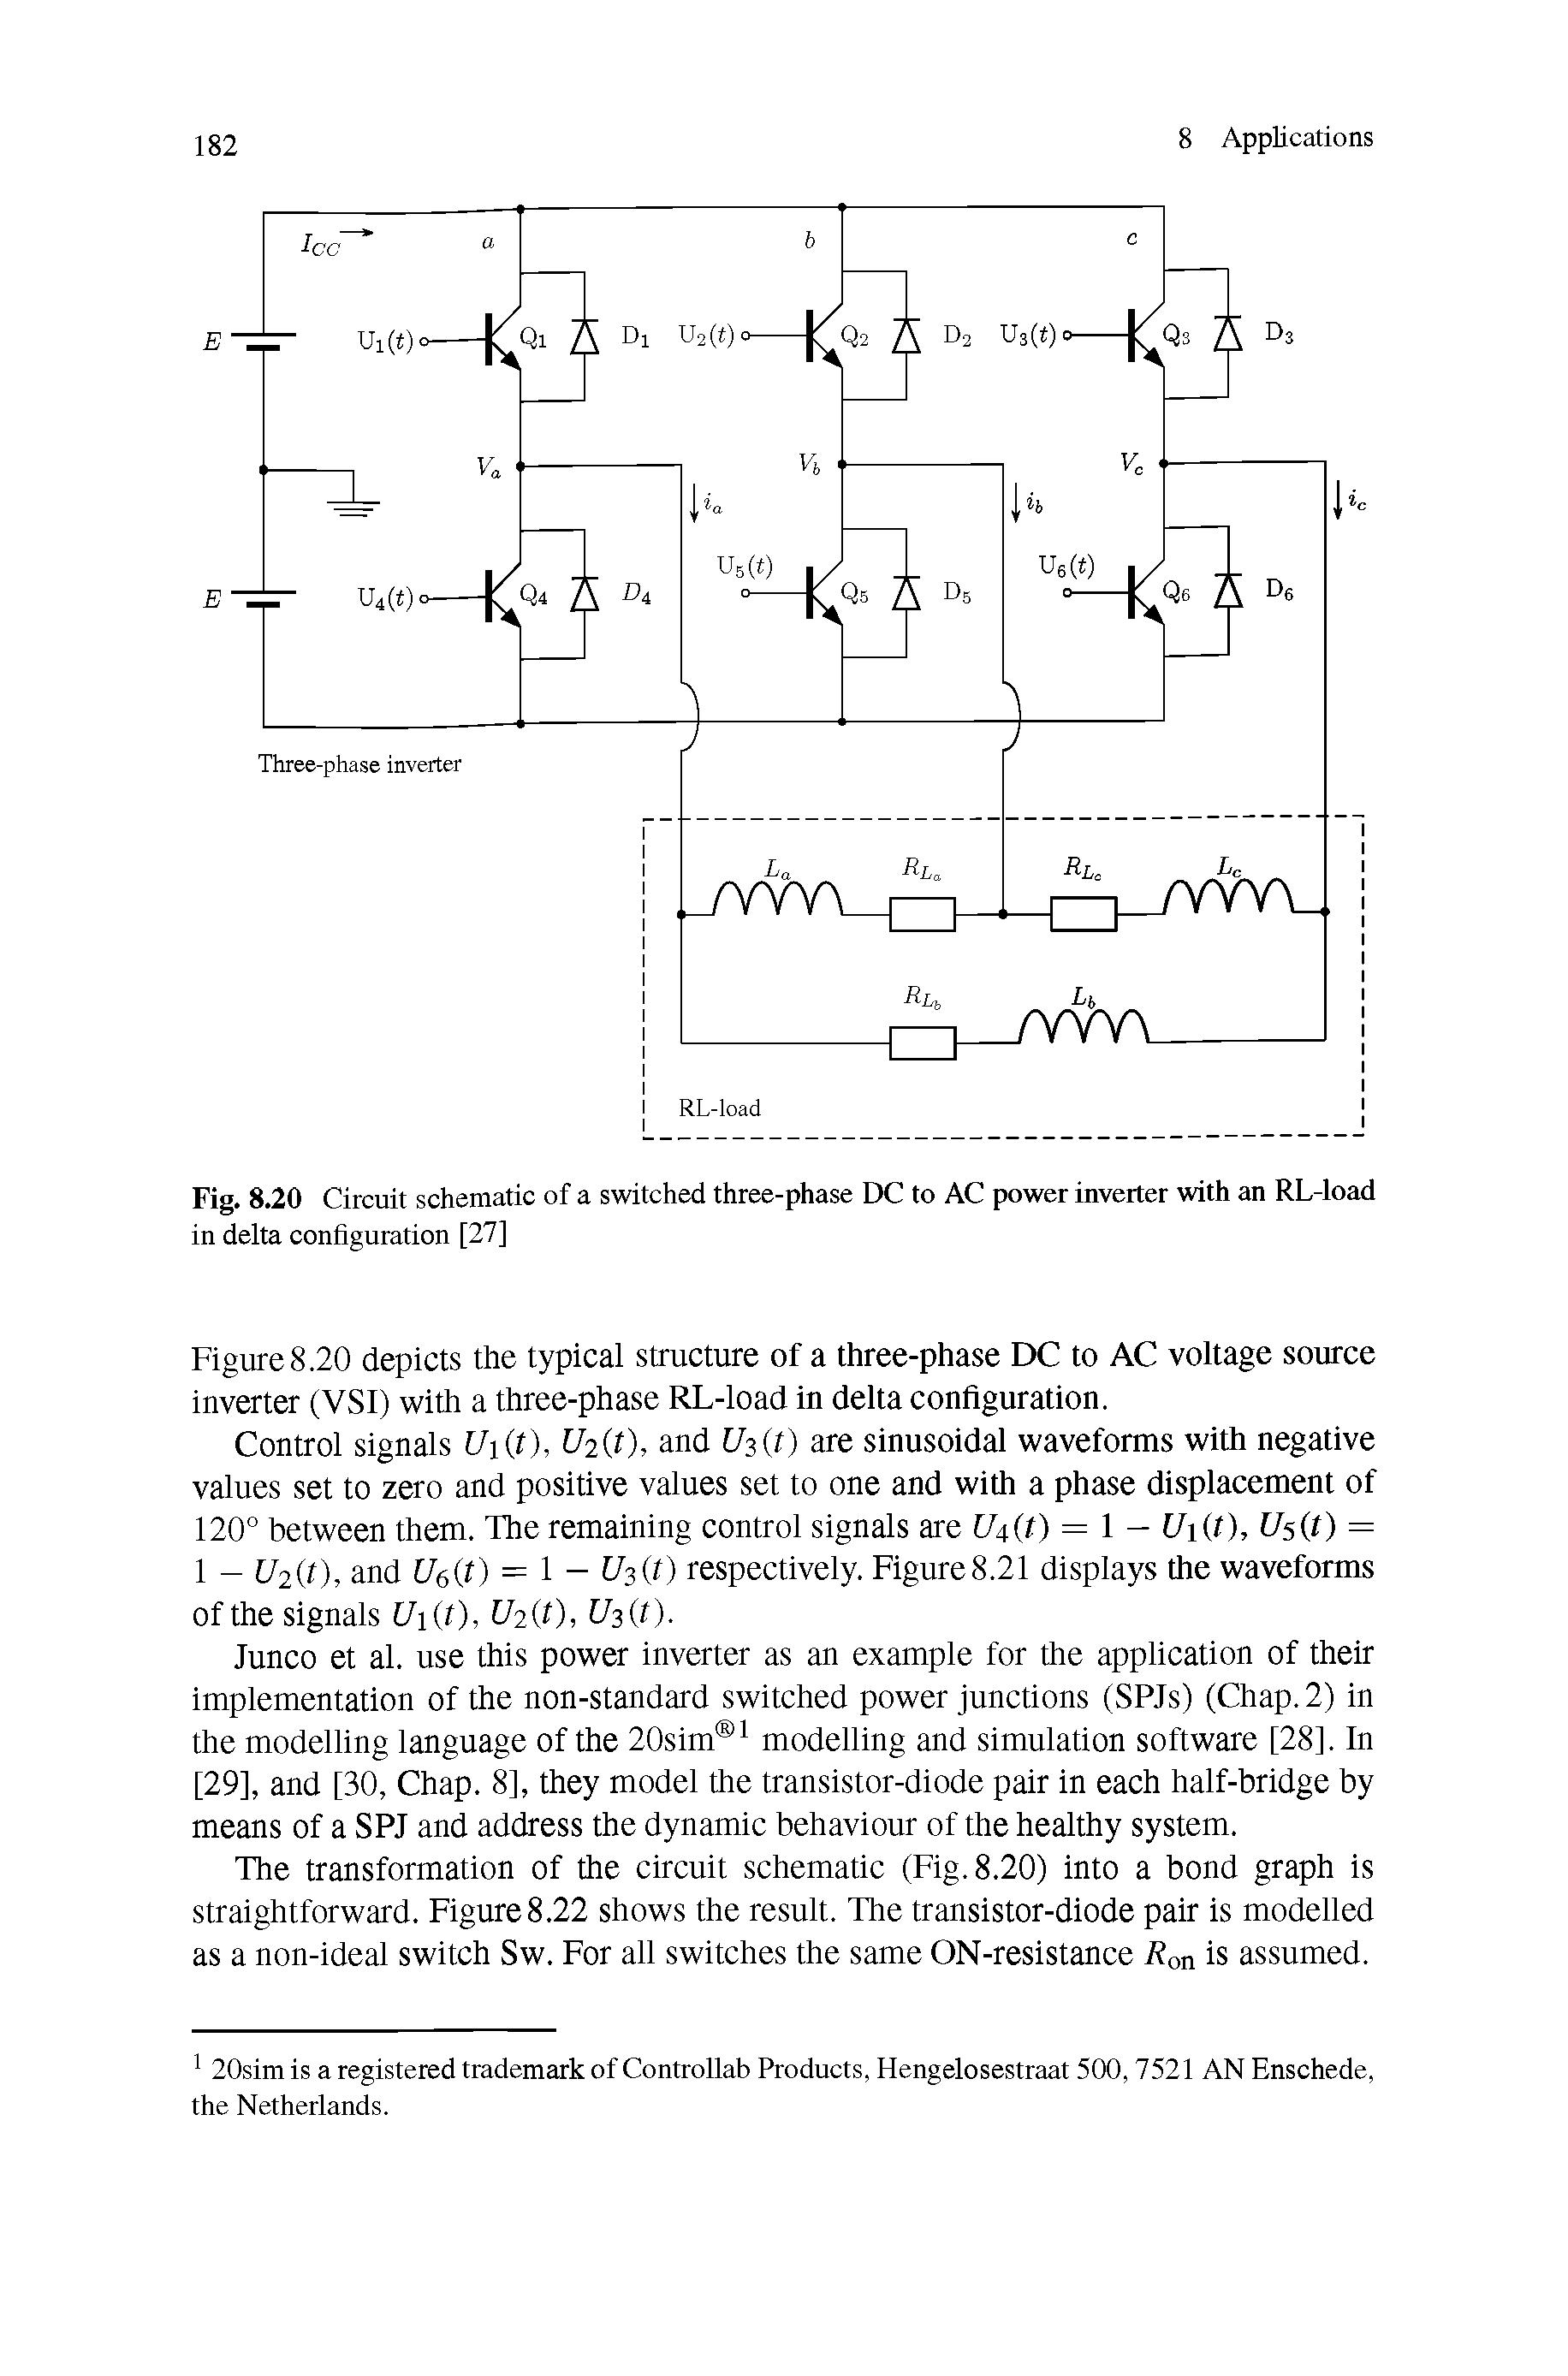 "Fig. 8.20 Circuit schematic of a switched <a href=""/info/three_phase"">three-phase</a> DC to AC power inverter with an RL-load in delta configuration [27]"